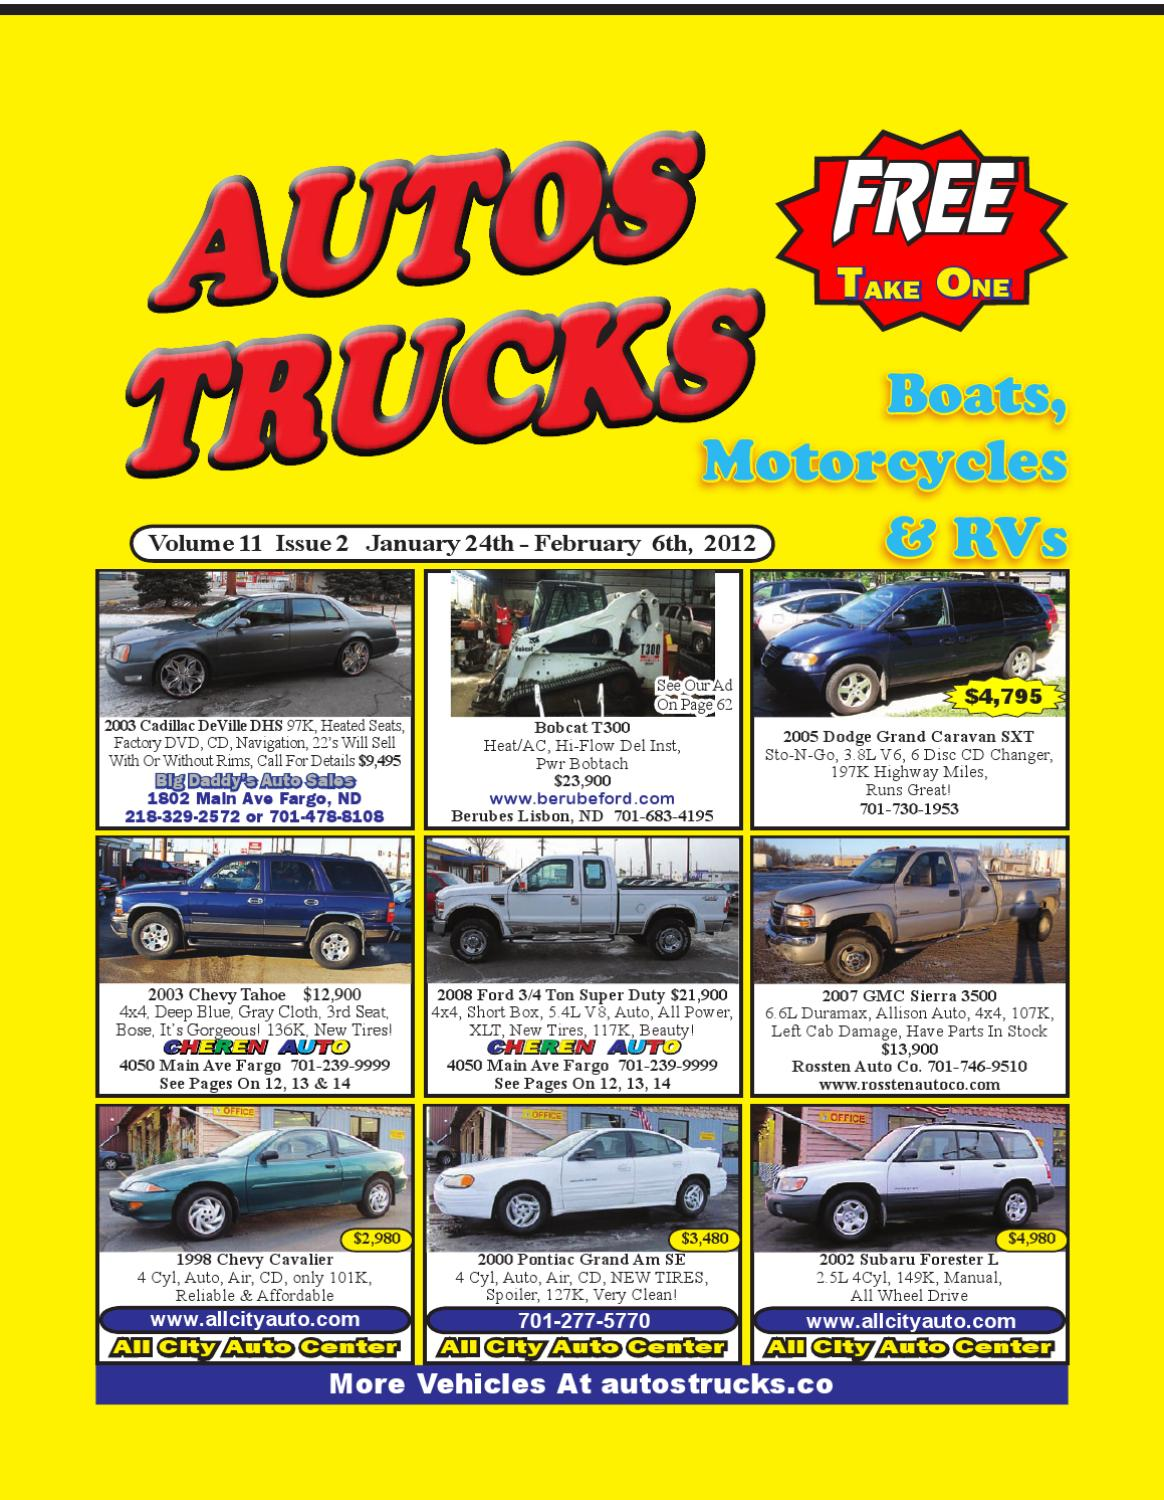 Autos Trucks Volume 11 Issue 2 By Issuu Engine Parts Diagram Ford 5 4l V8